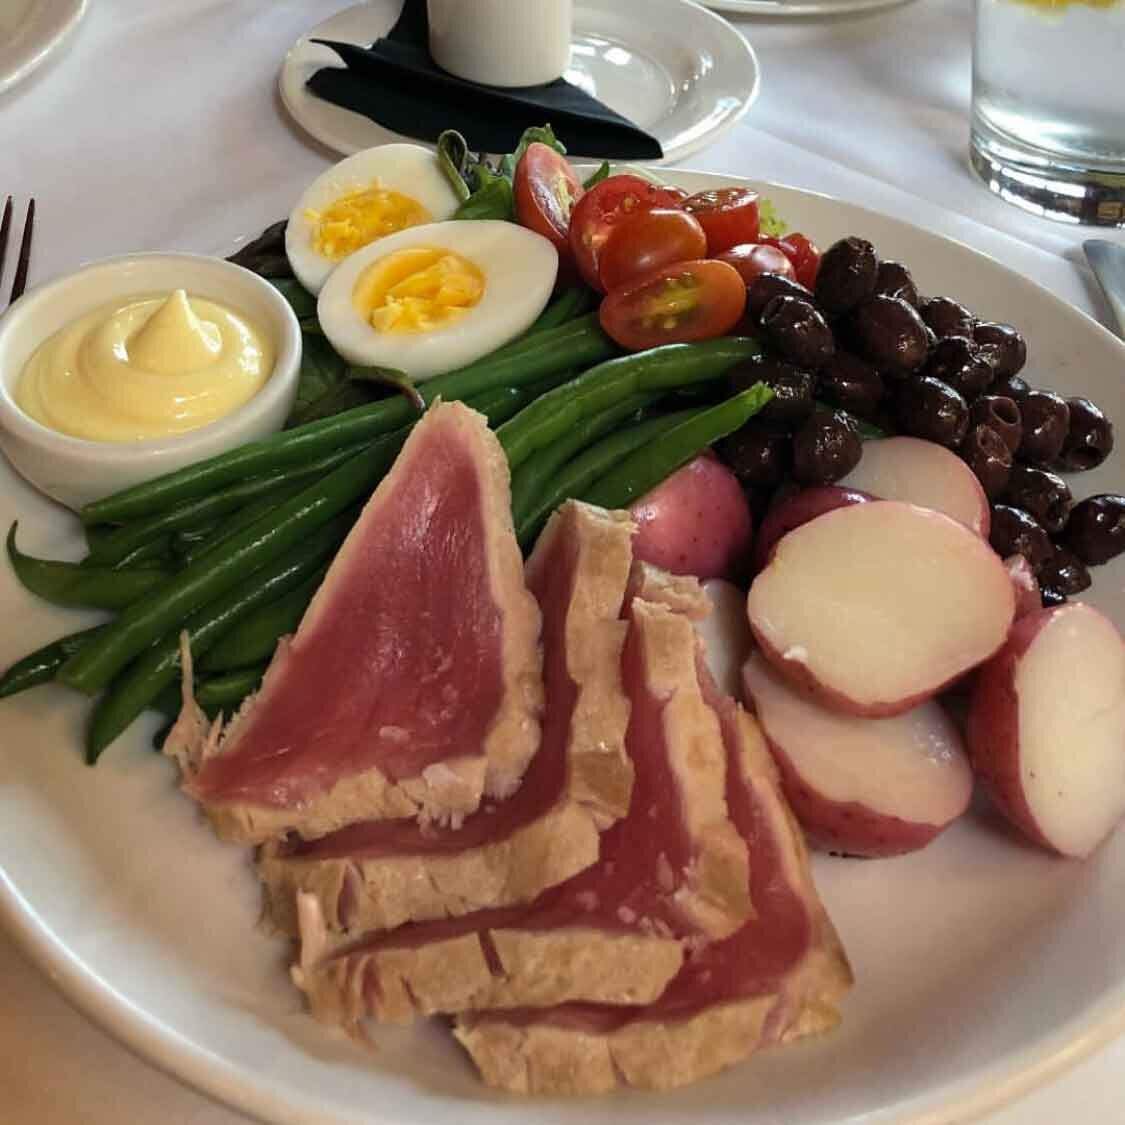 how to stay in shape healthy Nicoise salad seared tuna King Estate Winery Eugene Oregon